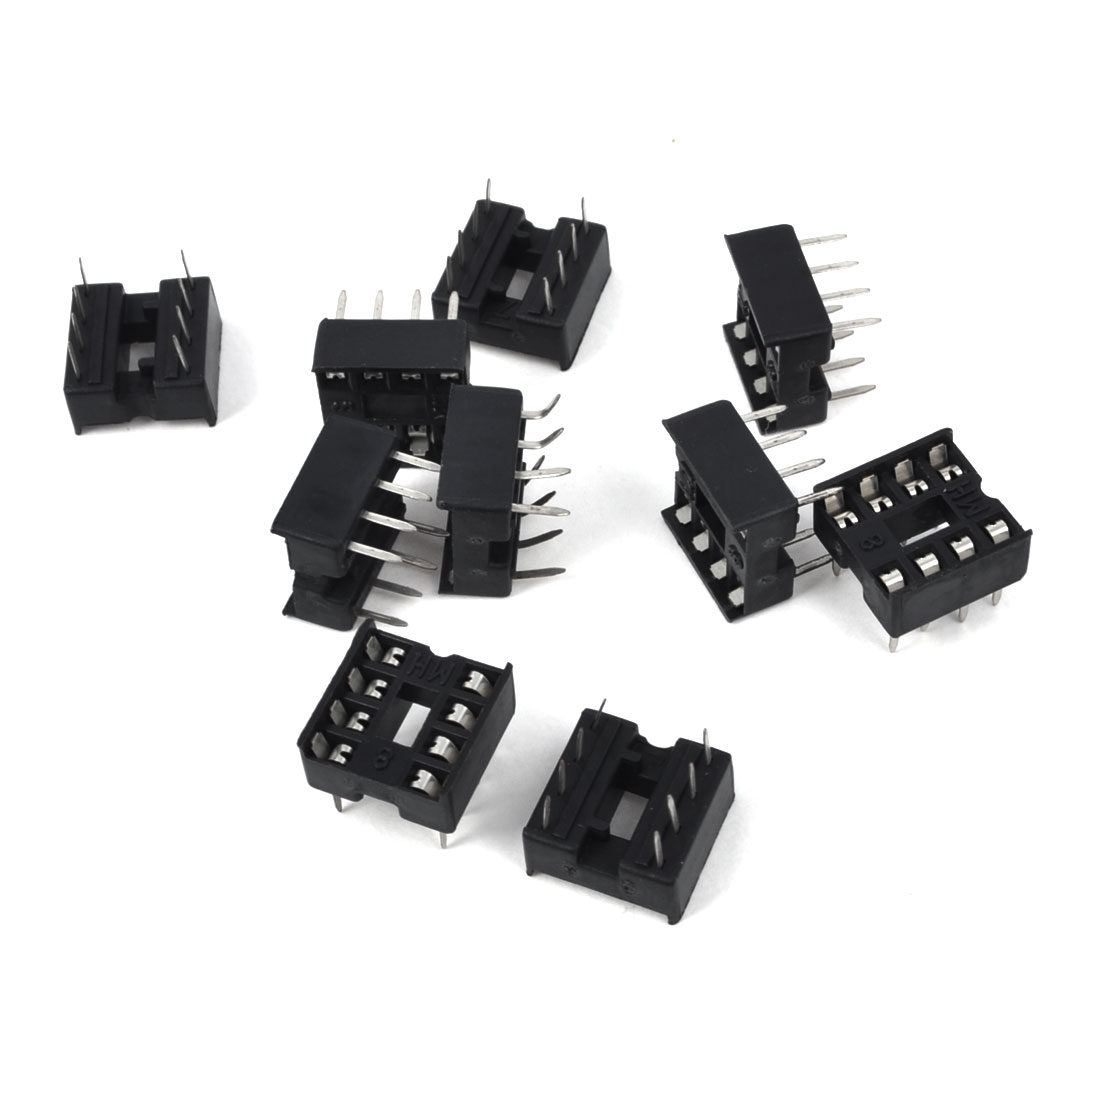 2.54mm Pitch Through Hole 8 Pins DIP IC Socket PCB Board Adapter 10 Pcs